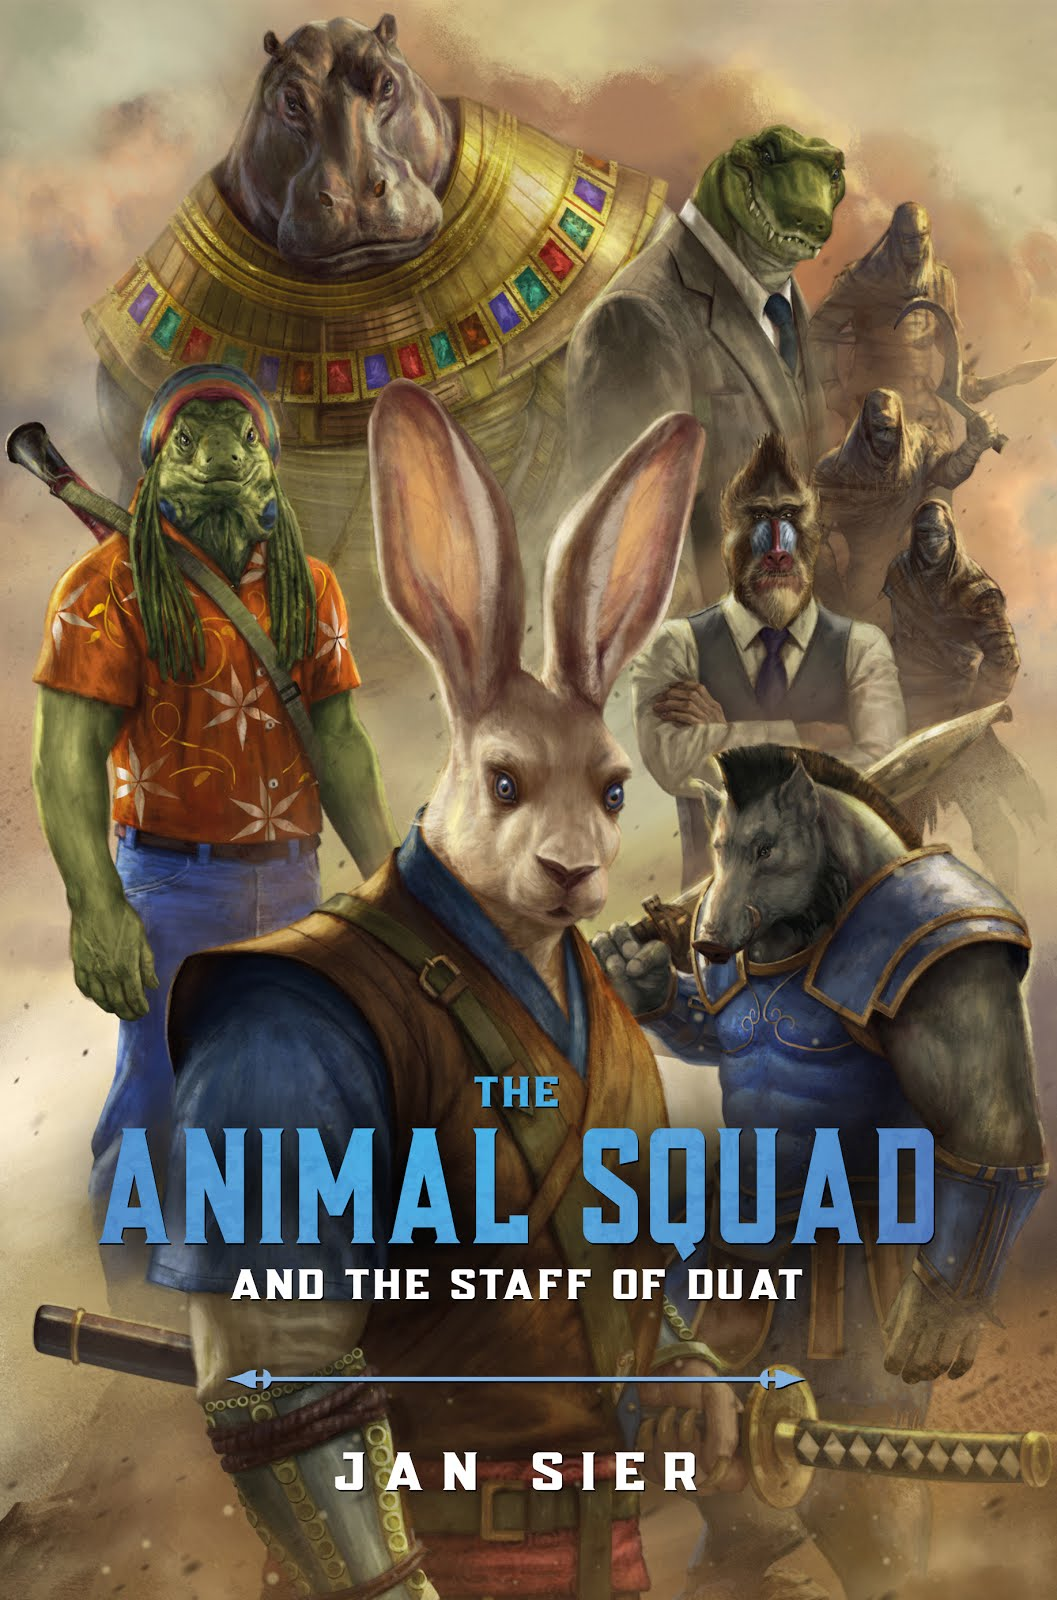 The Animal Squad and the Staff of Duat